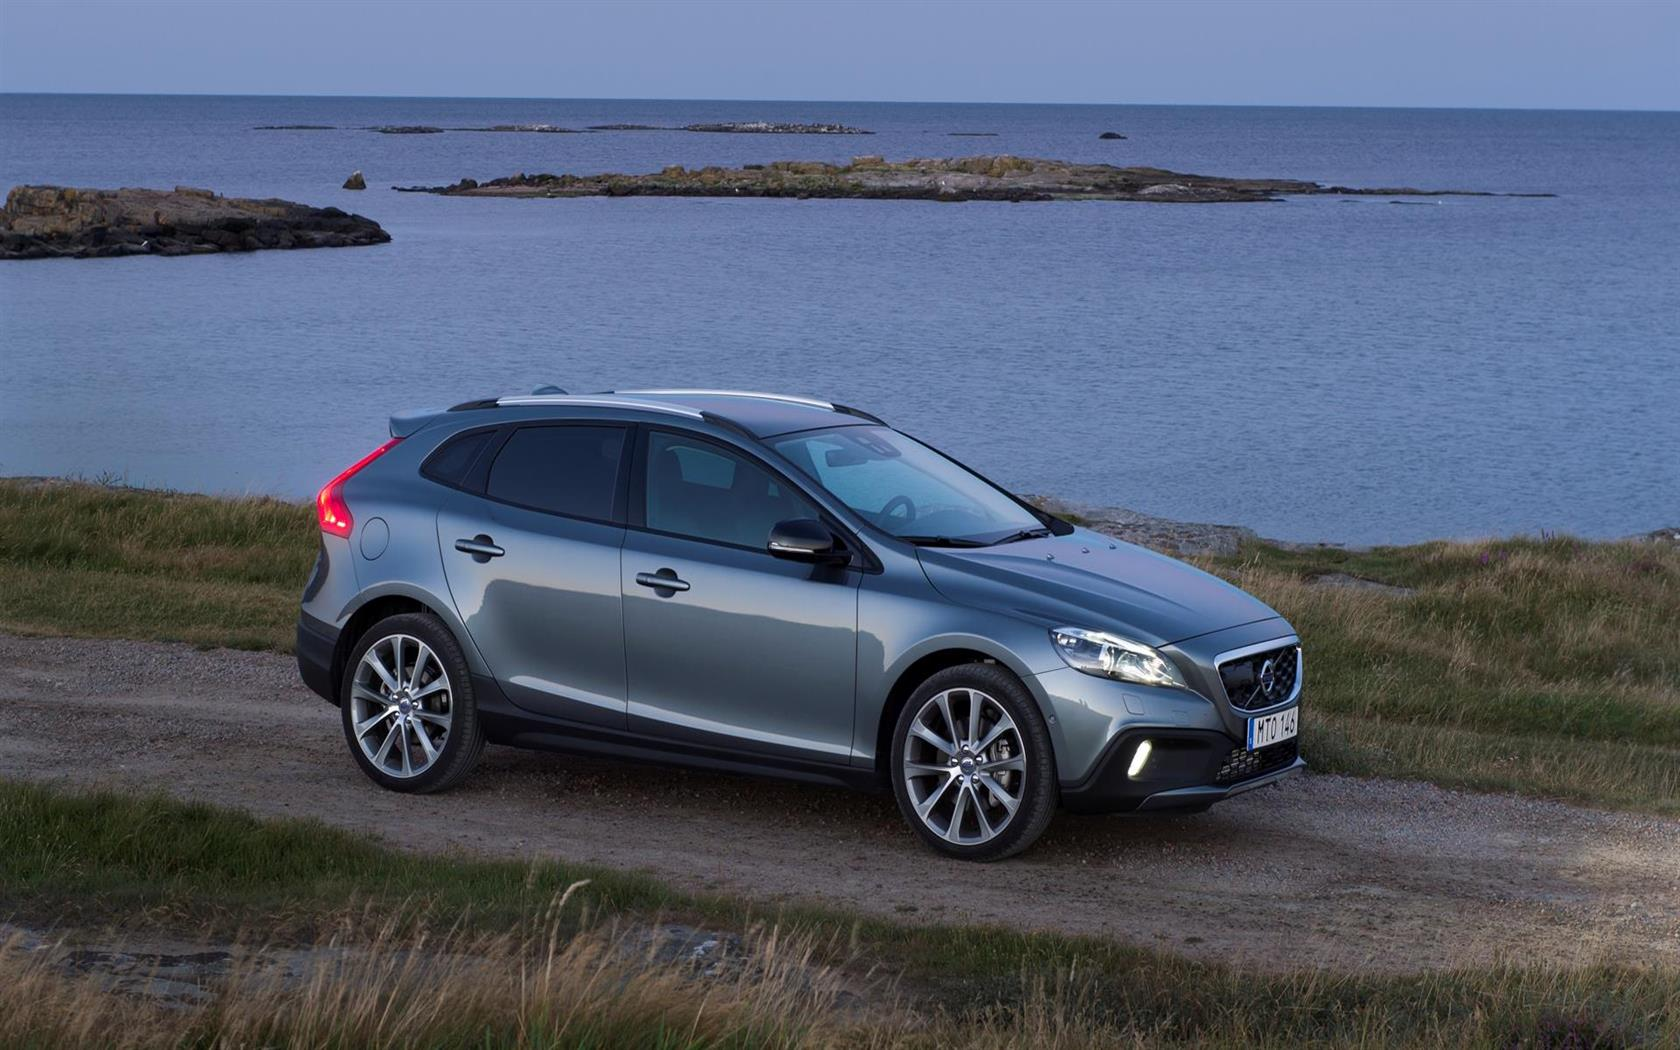 2016 volvo v40 cross country images photo 2016 volvo v40 cross country 015. Black Bedroom Furniture Sets. Home Design Ideas